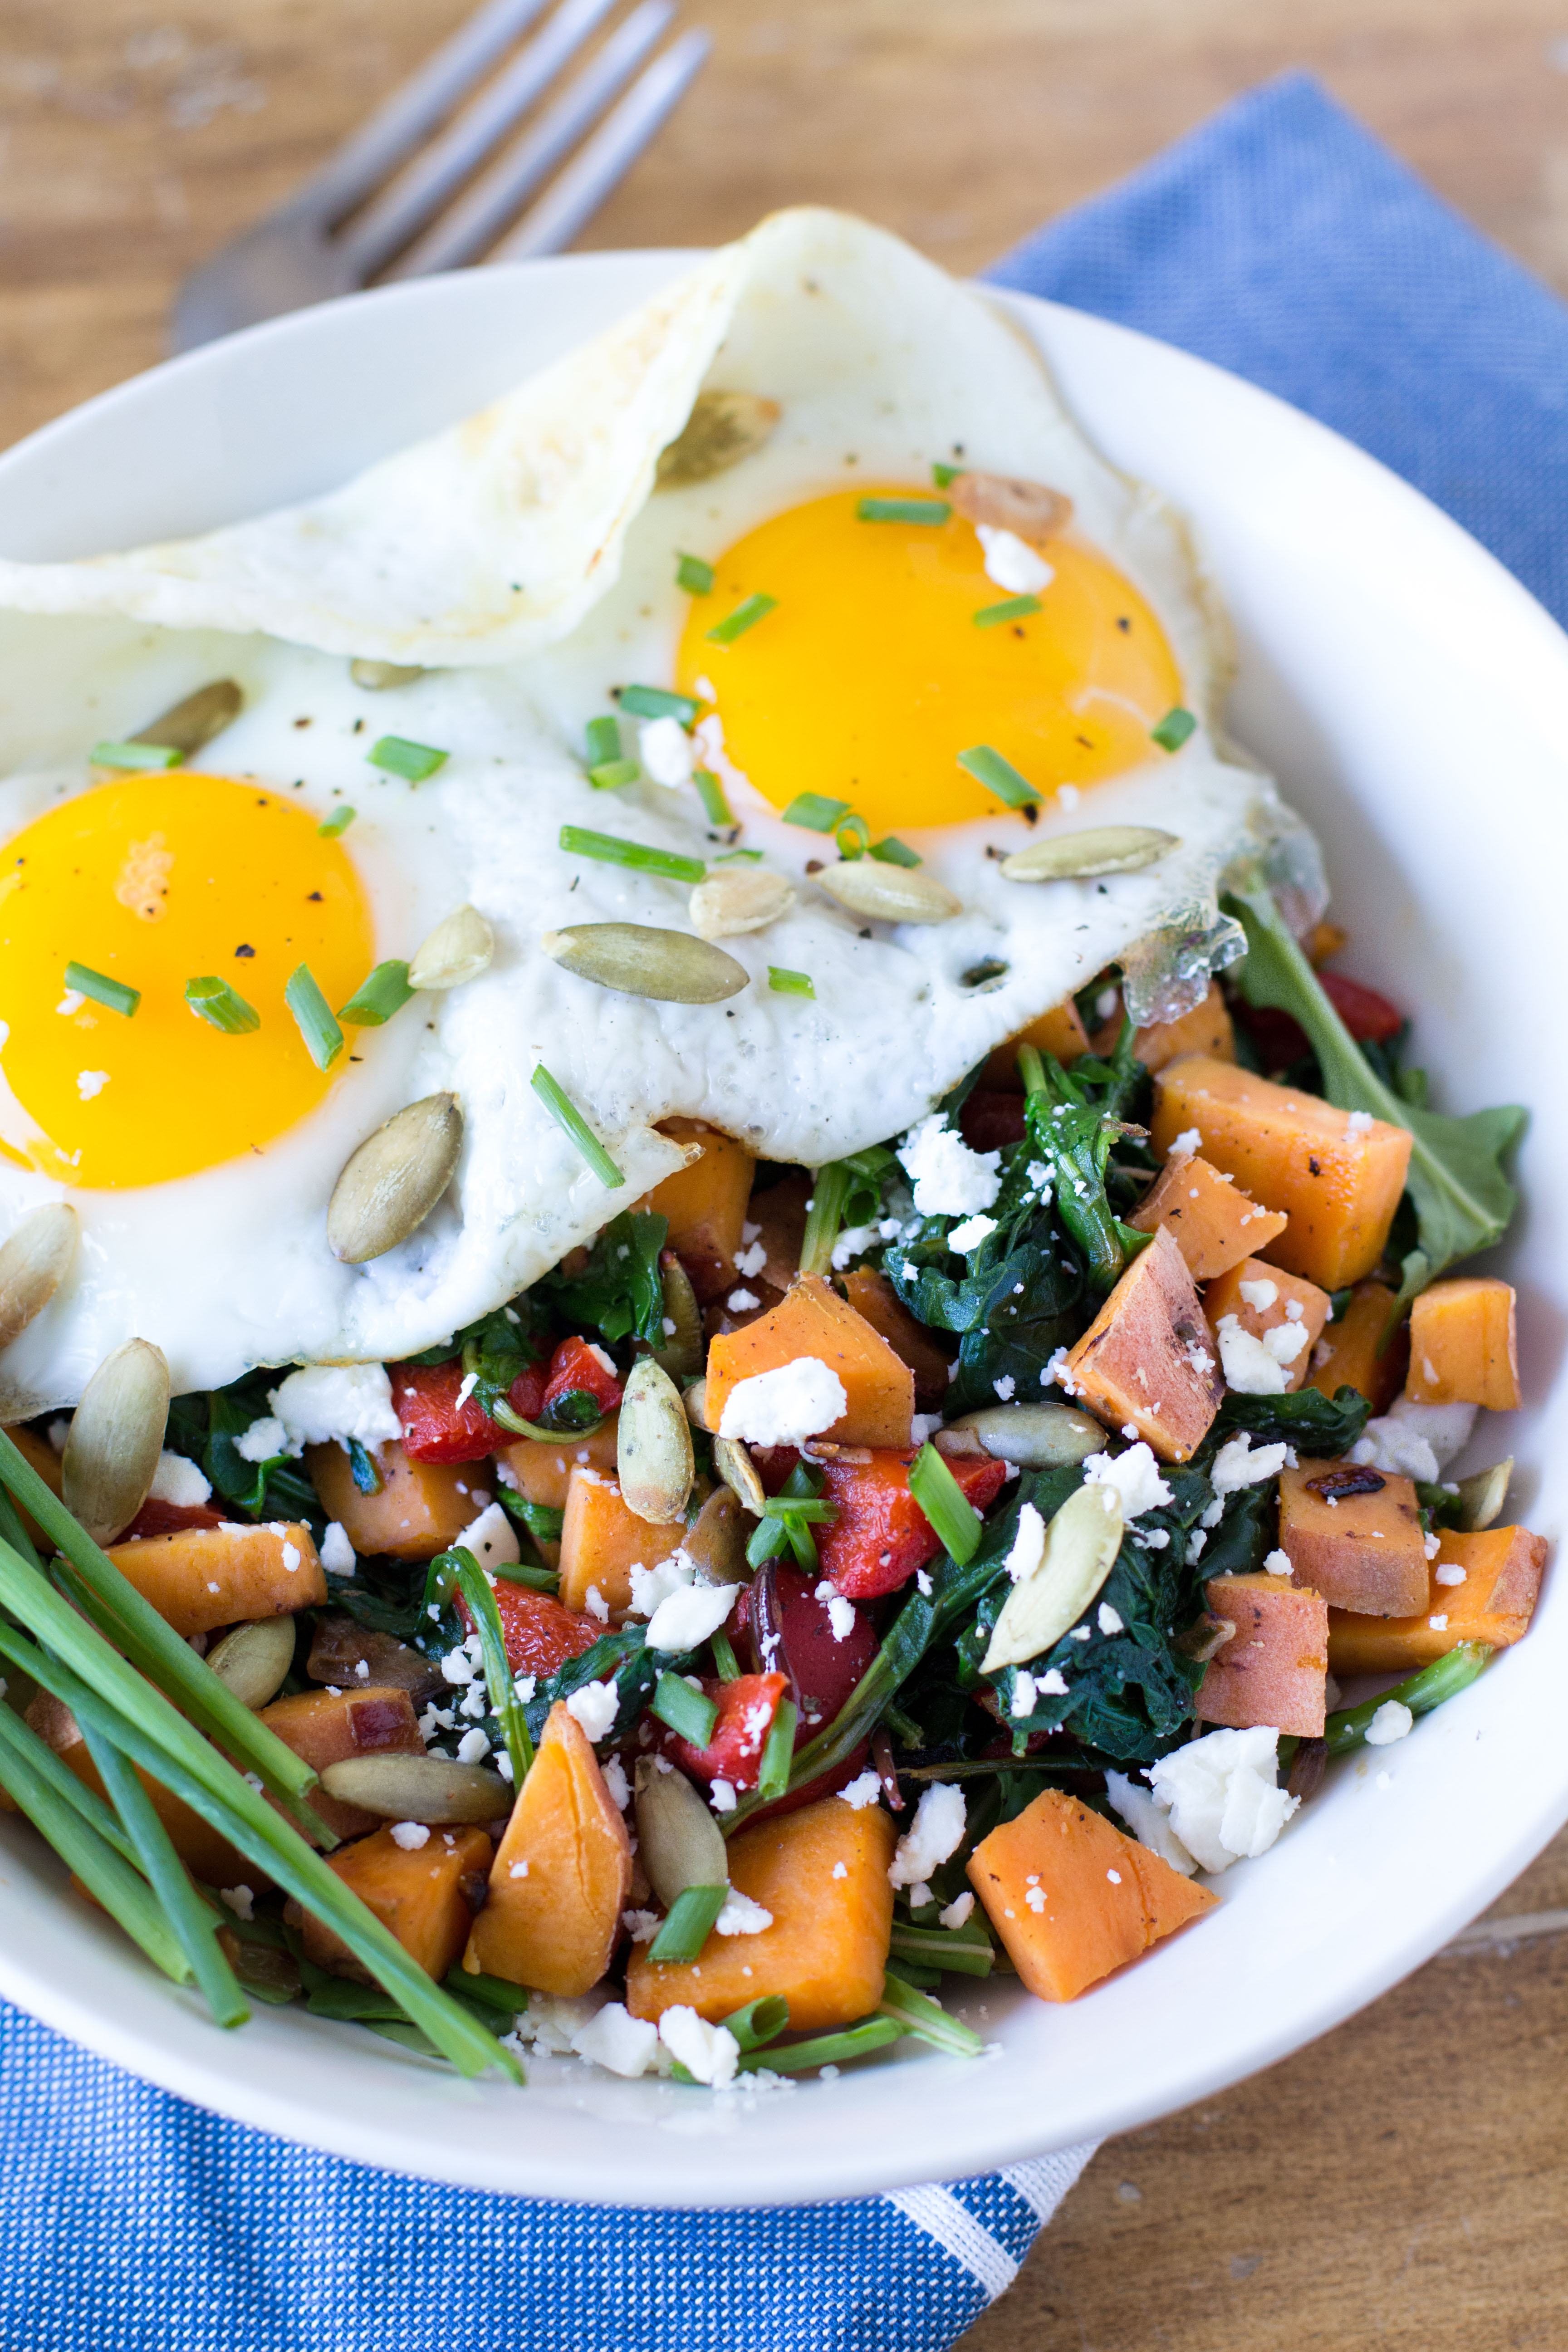 Start your day with a filling and nutritious breakfast bowl! Sweet potatoes, power greens, red pepper and onion add tons of fiber and vitamins, while fried eggs provide protein to keep you full until your next meal.